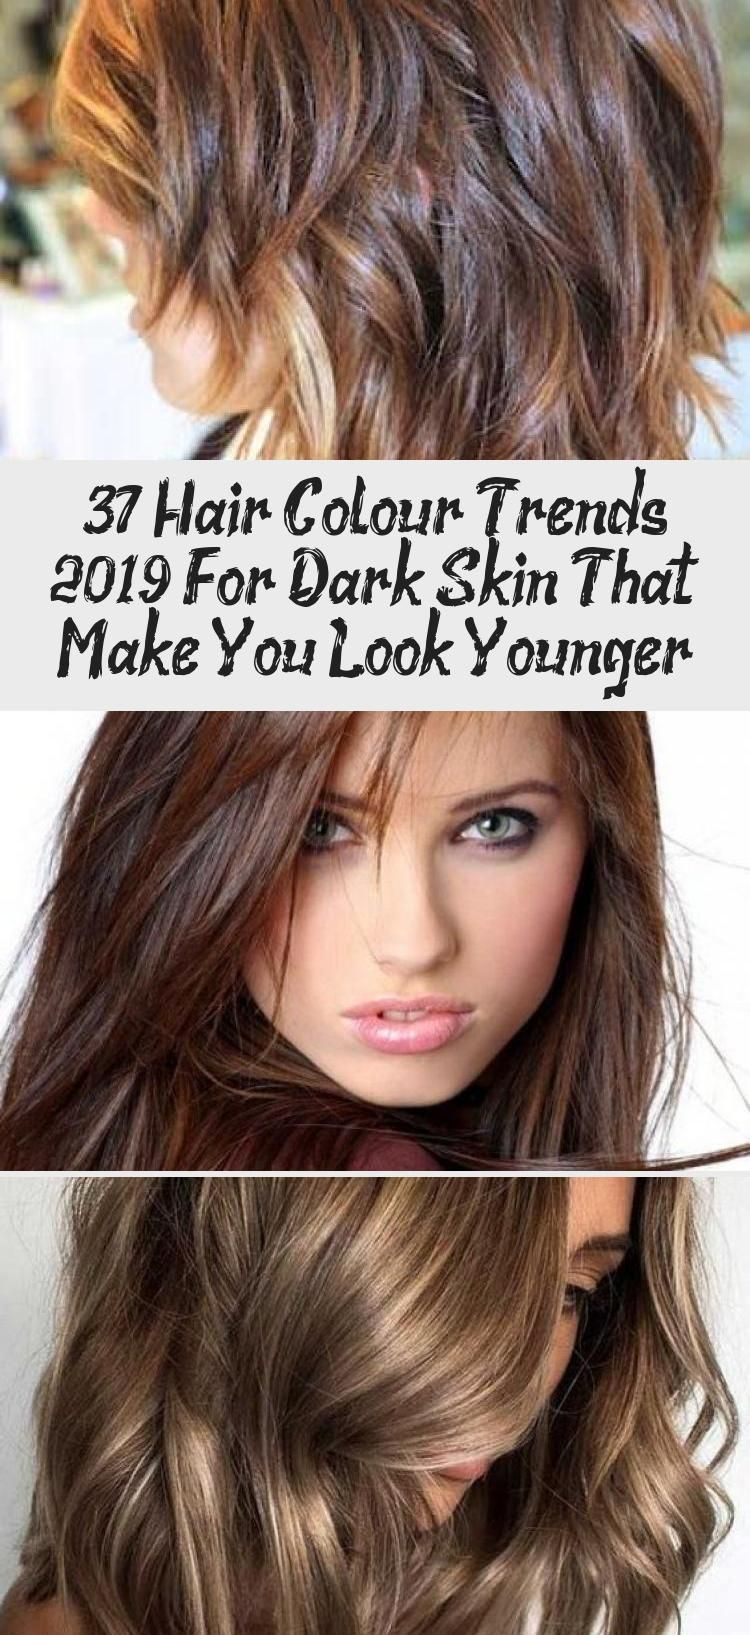 37 Hair Colour Trends 2019 For Dark Skin That Make You Look Younger Hair Colour Style Hairtrends40yearolds Upcomi Hair Color Trends Hair Color Younger Hair